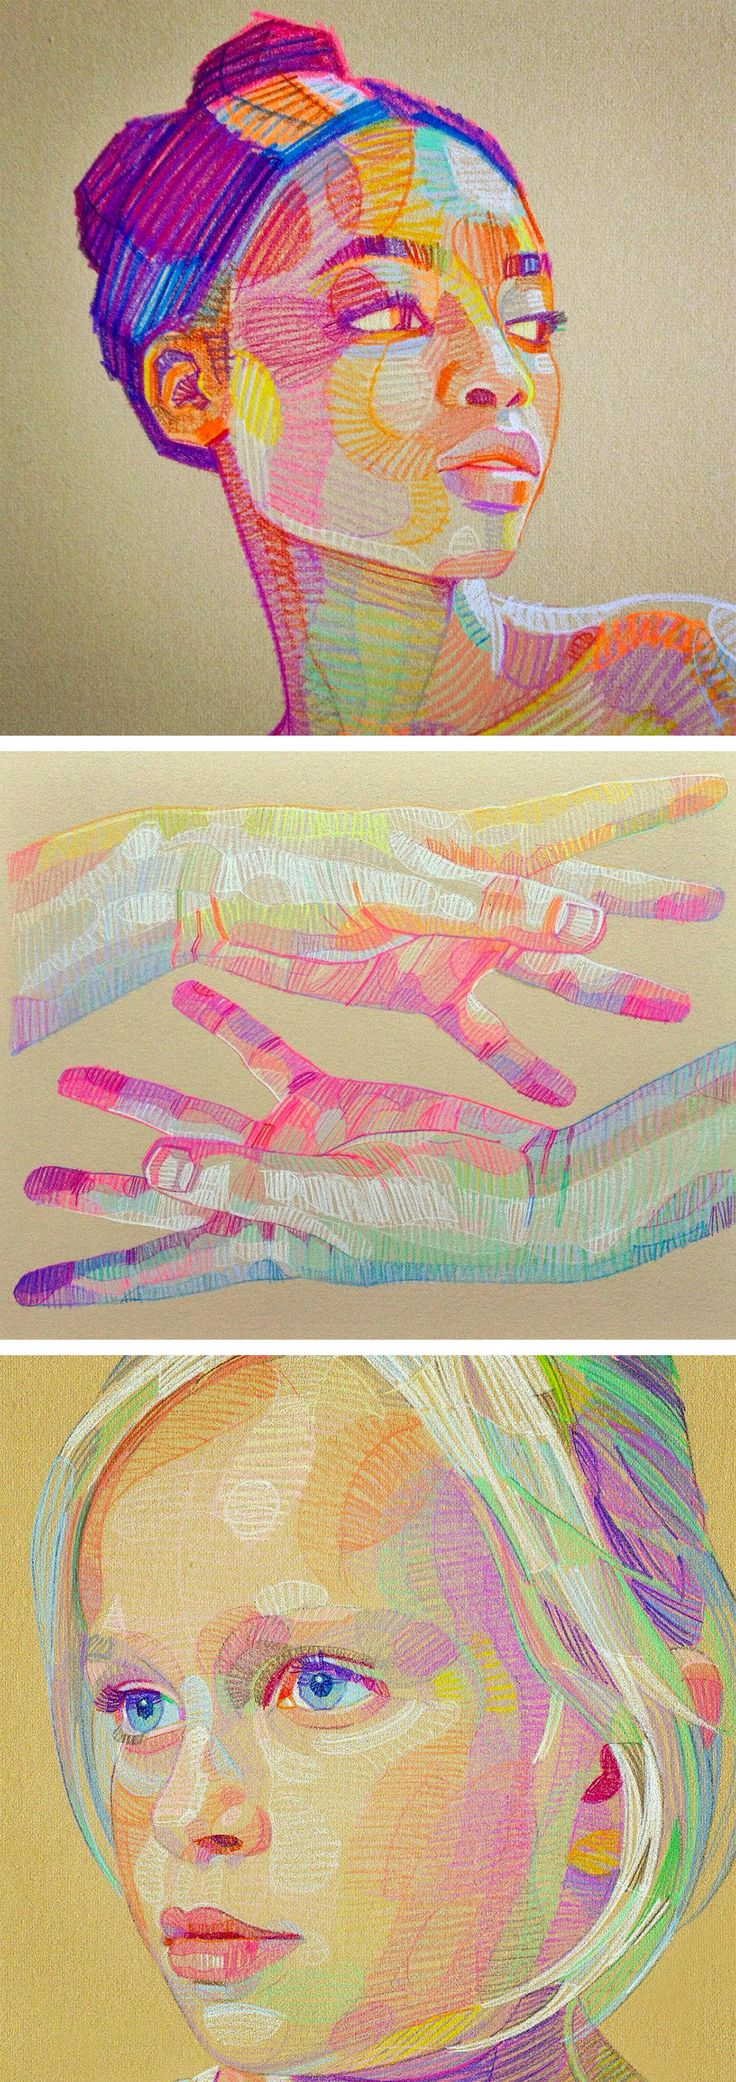 prismatic sketches of hands and faces by lui ferreyra - Color Drawings